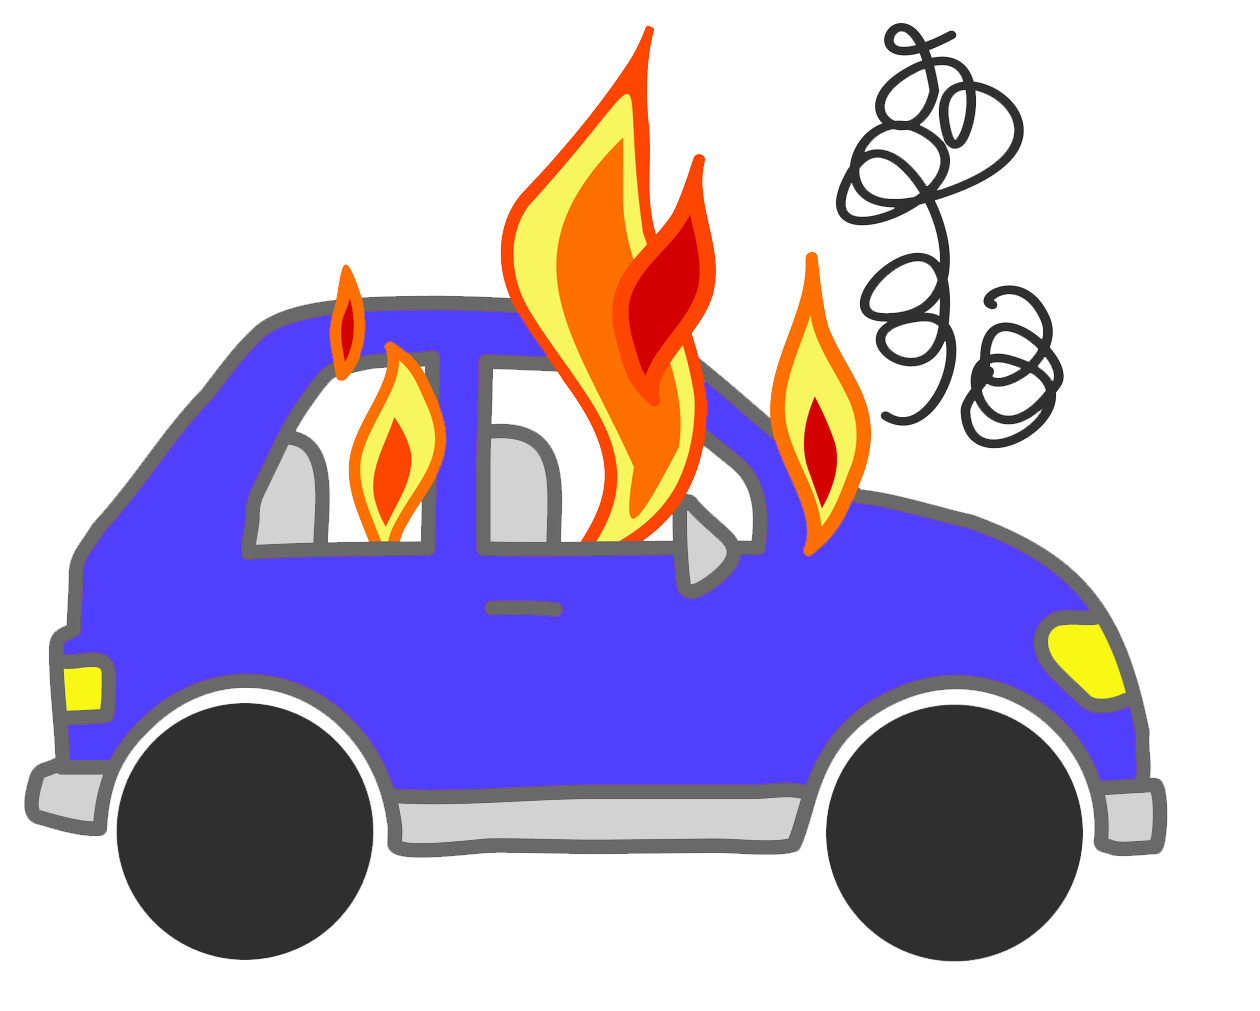 On fire noxad org. Clipart cars pink